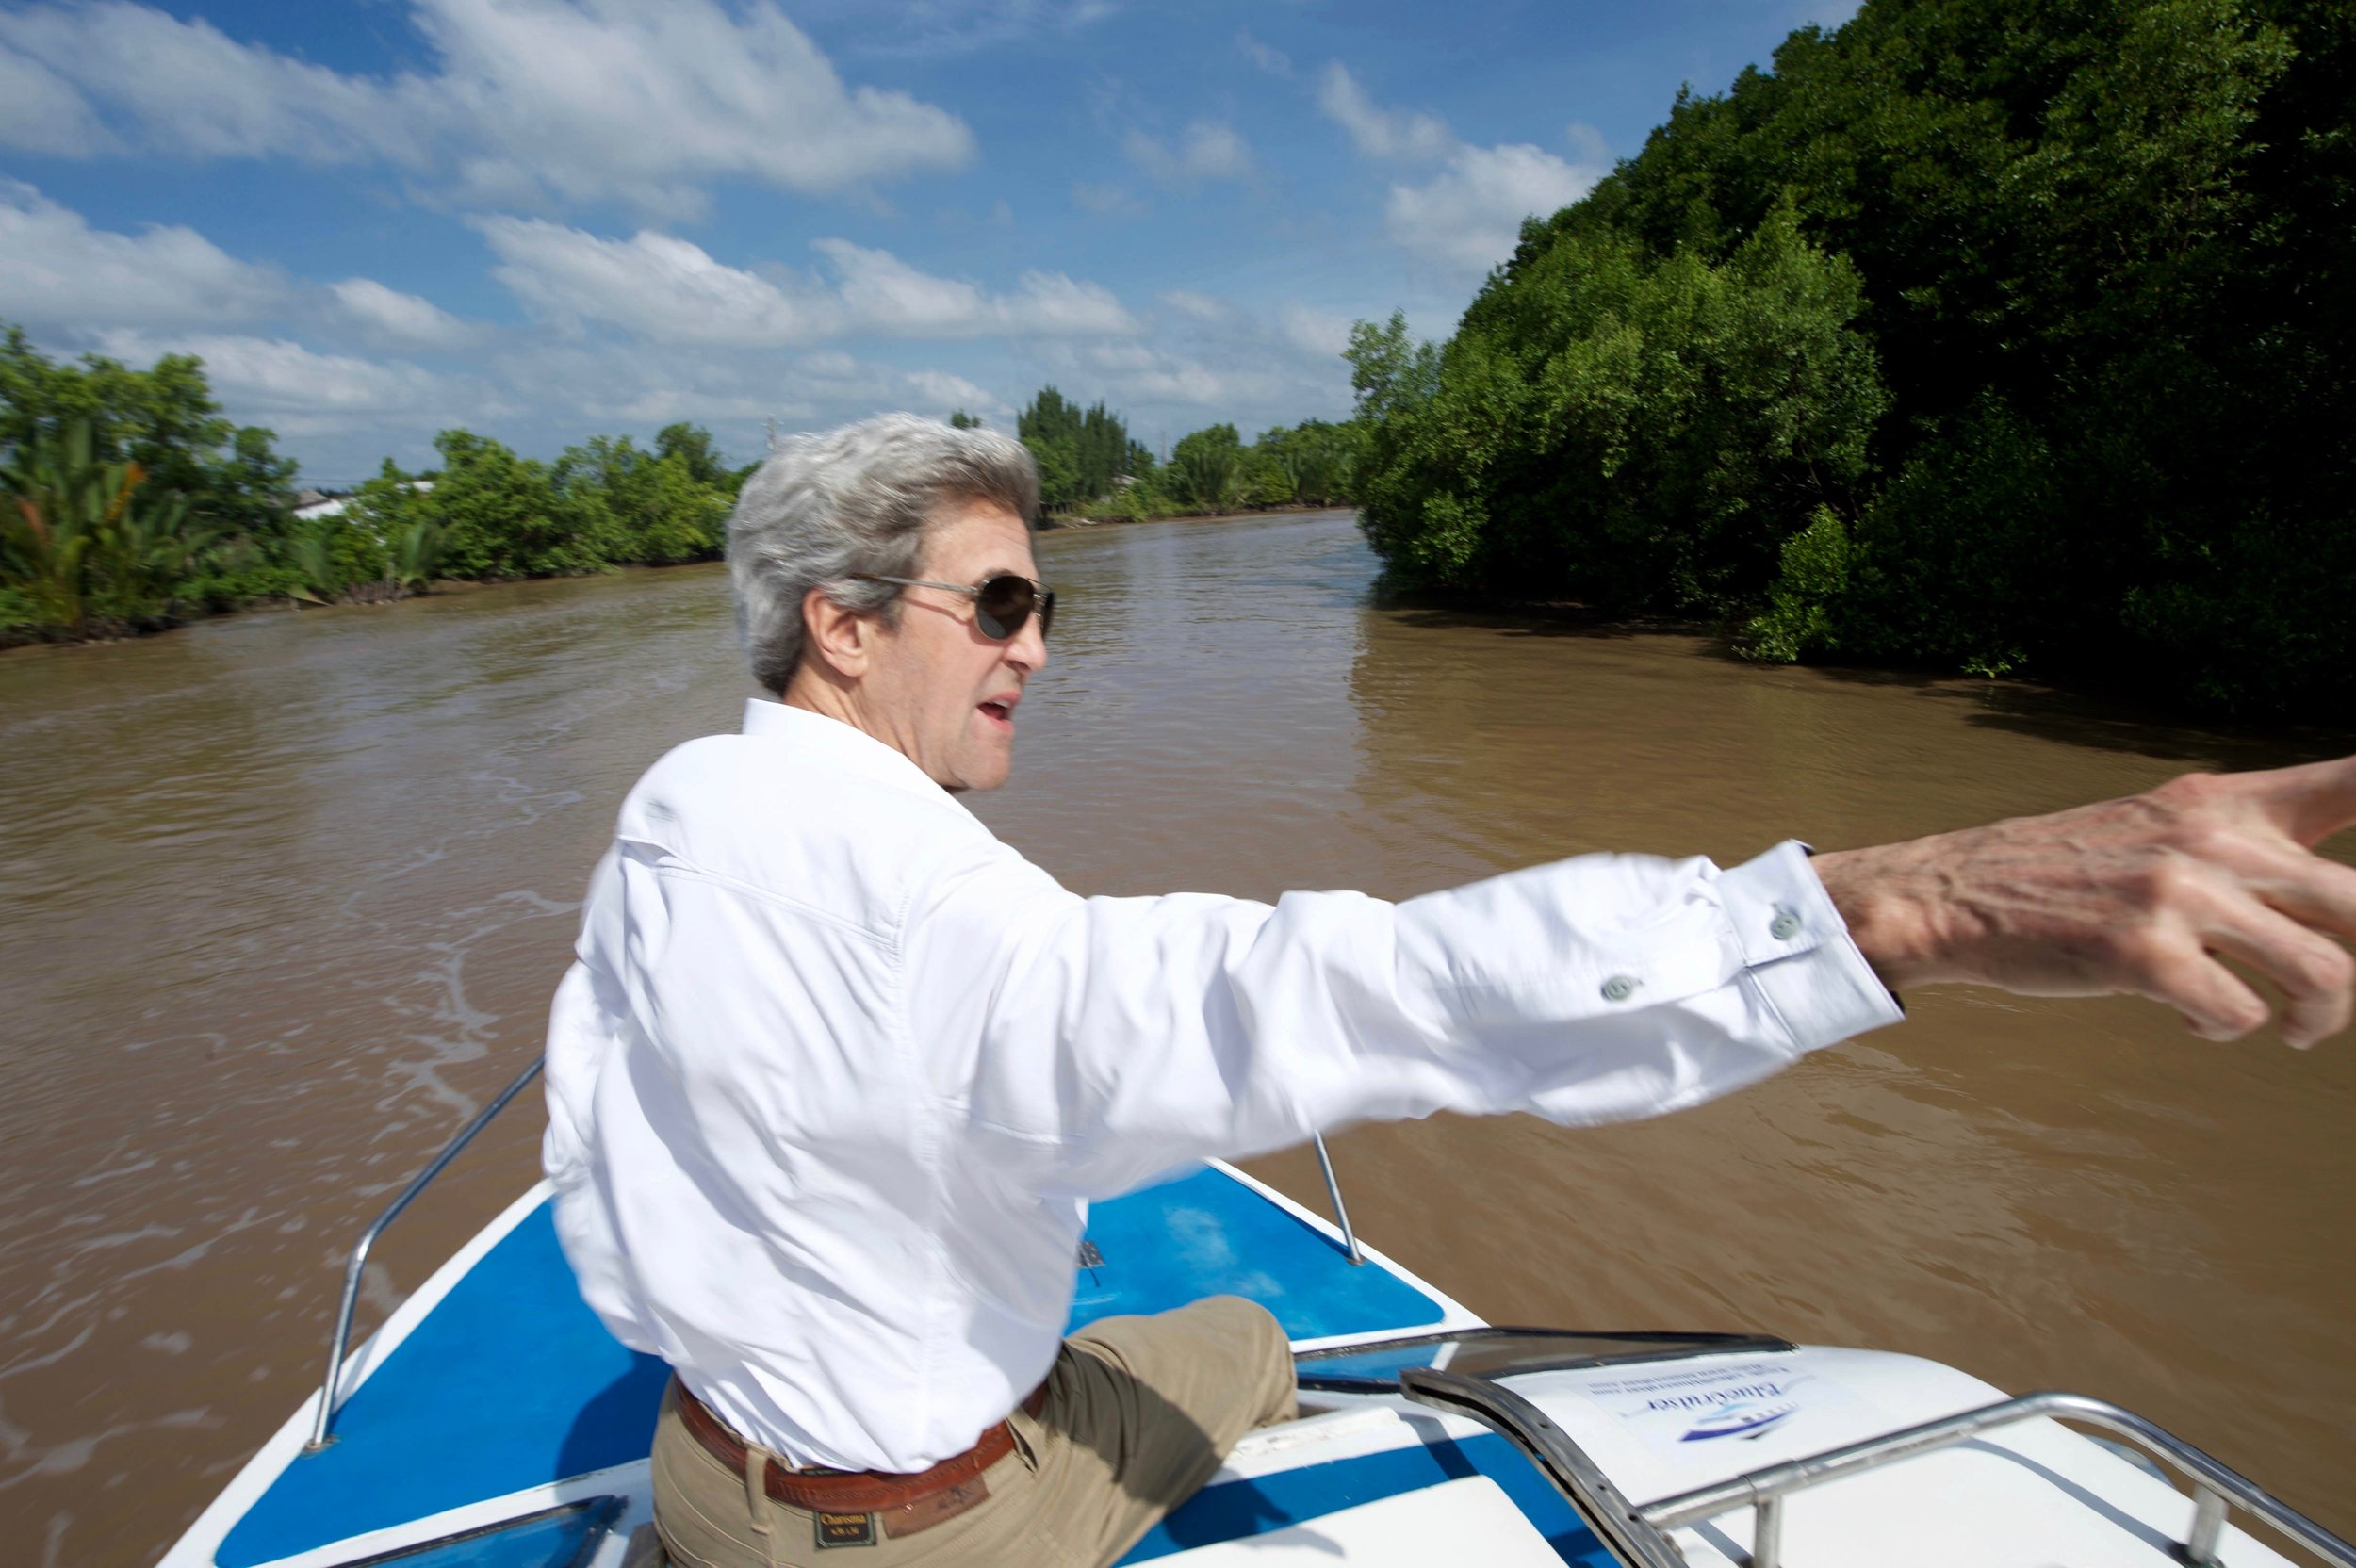 Secretary Kerry finds the spot where he beached his Swift Boat and killed a Viet Cong soldier in an episode later derided during the 2004 presidential campaign.